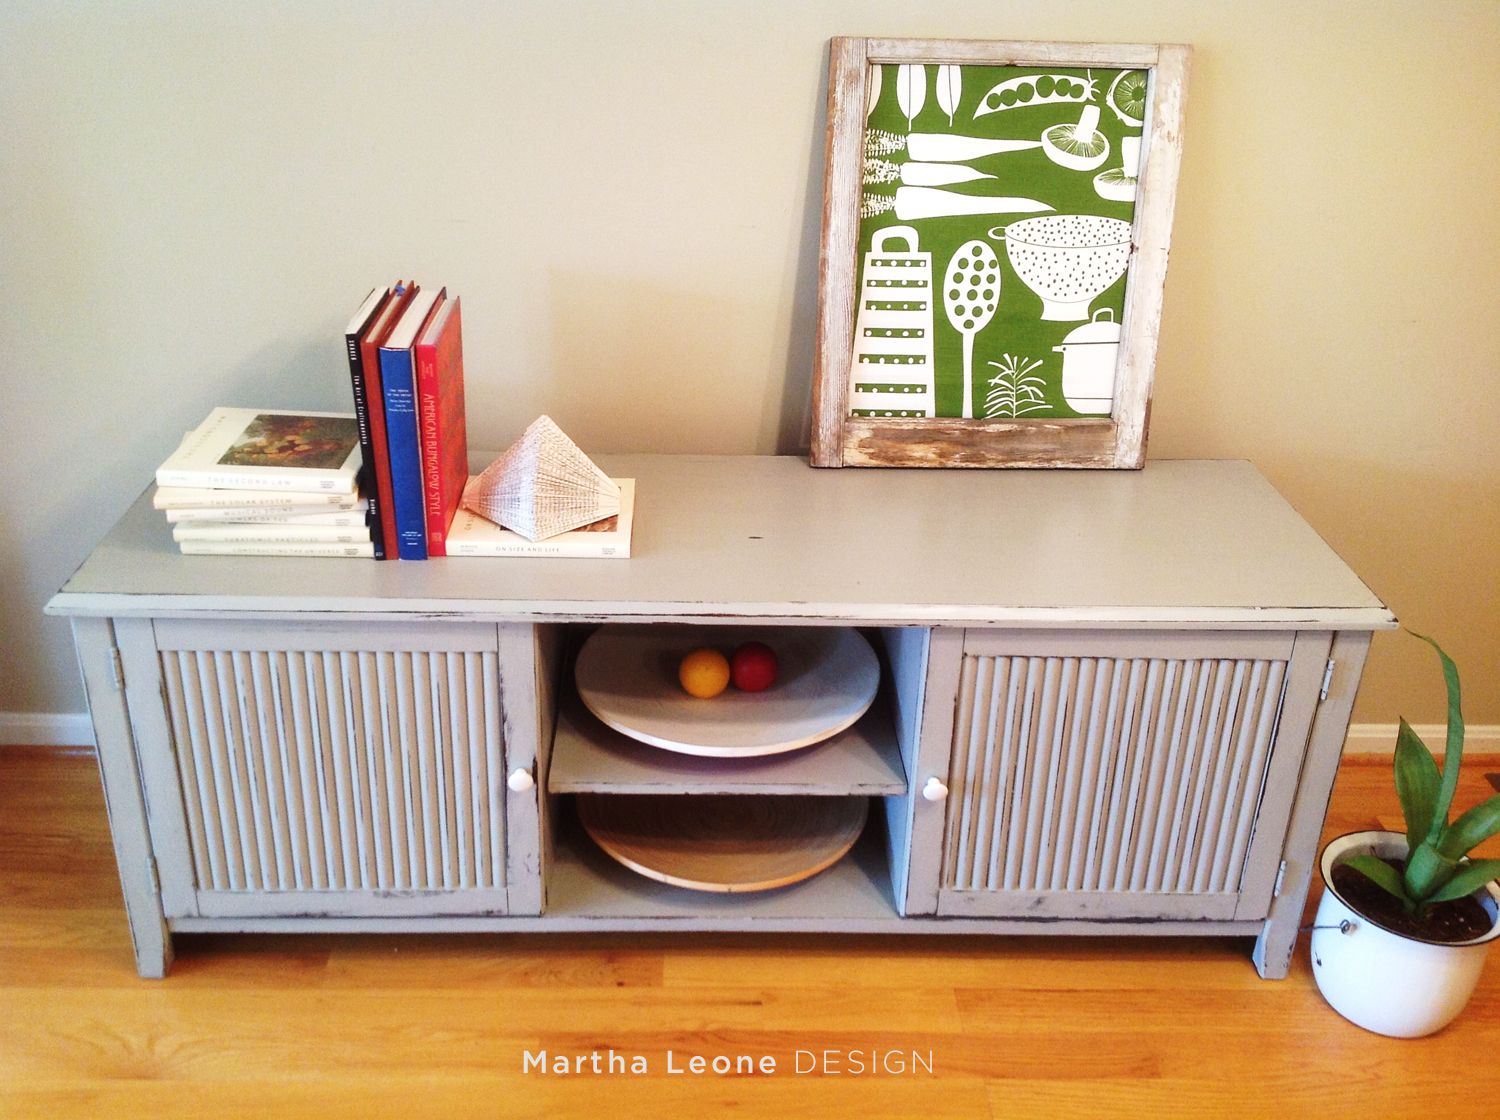 TV Console MarthaLeoneDesign2